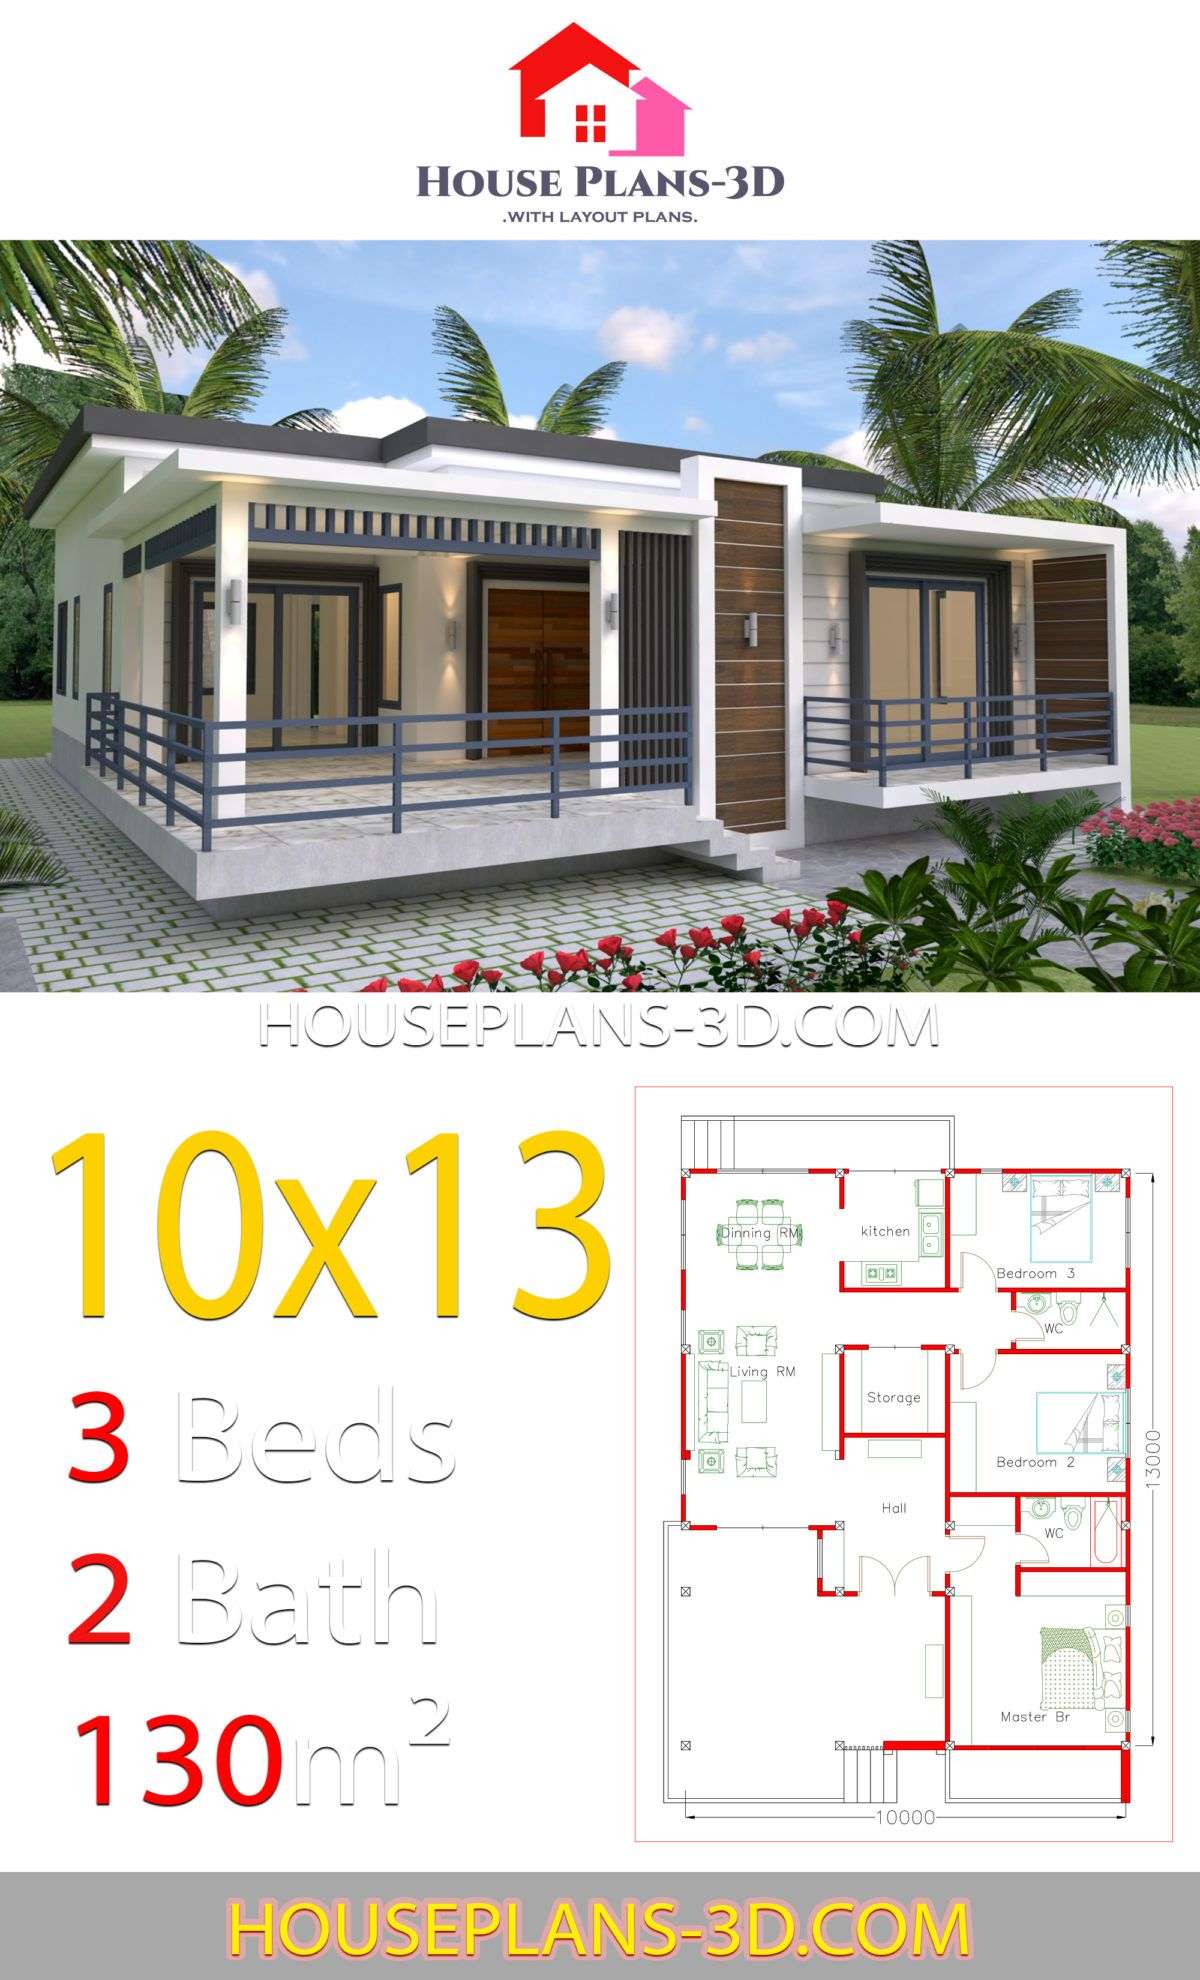 House Design 10x13 With 3 Bedrooms Terrace Roof House Plans 3d House Design Pictures House Plans Mansion House Construction Plan